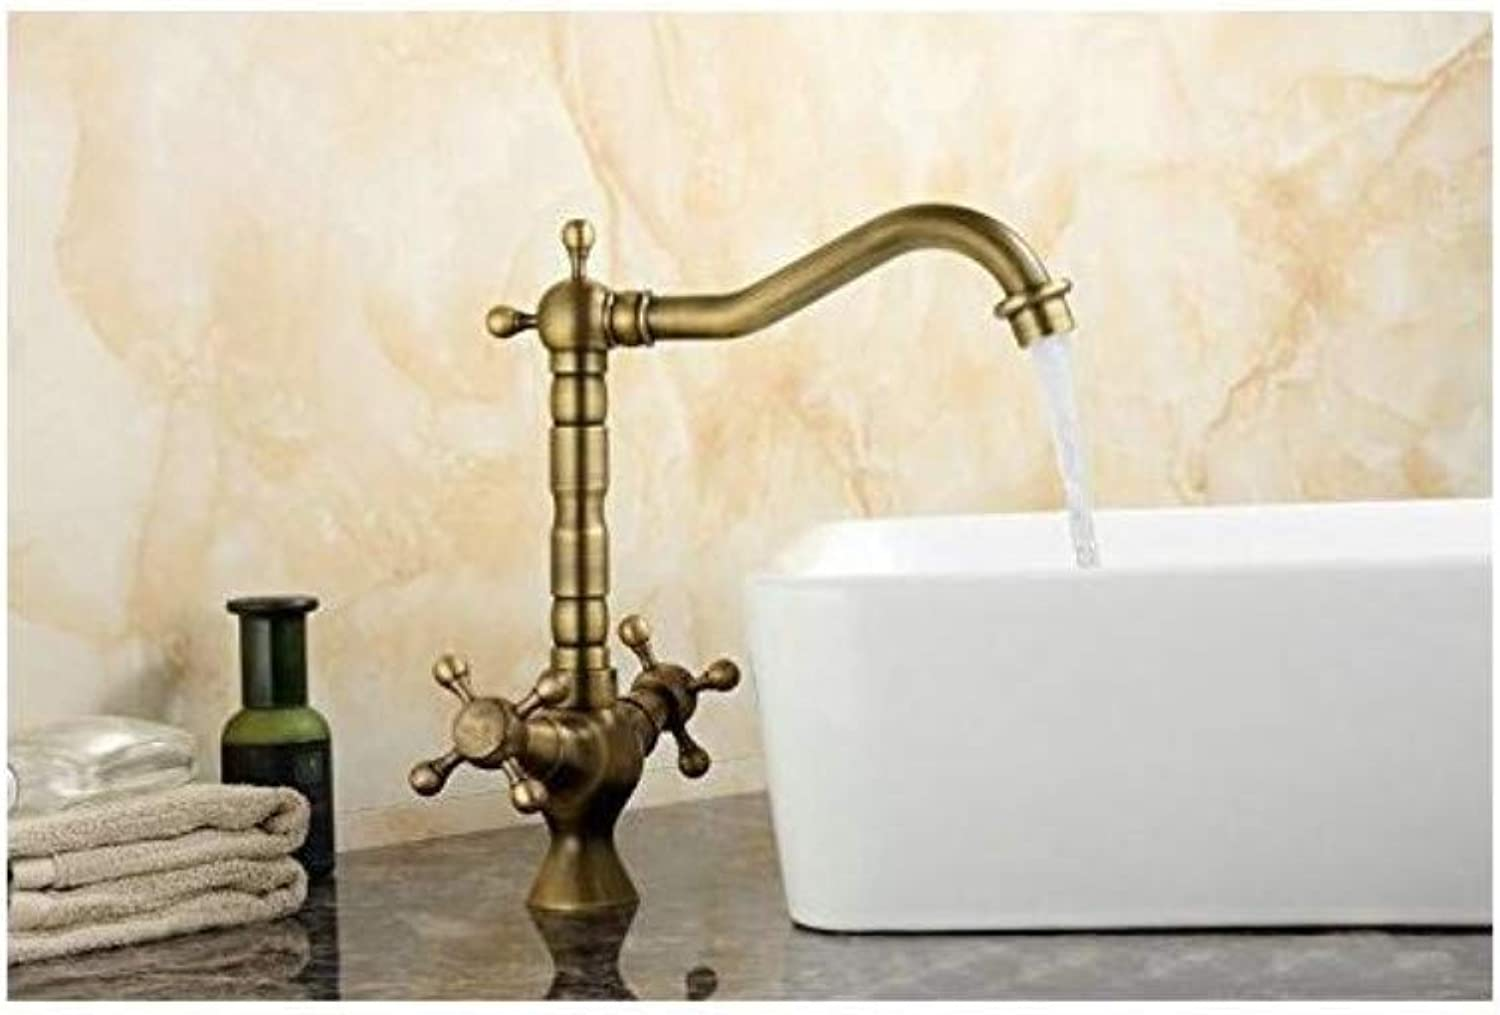 Luxury Vintage Plated Faucet Antique Polished Kitchen Faucet Brass Hot&Cold Sink Mixer